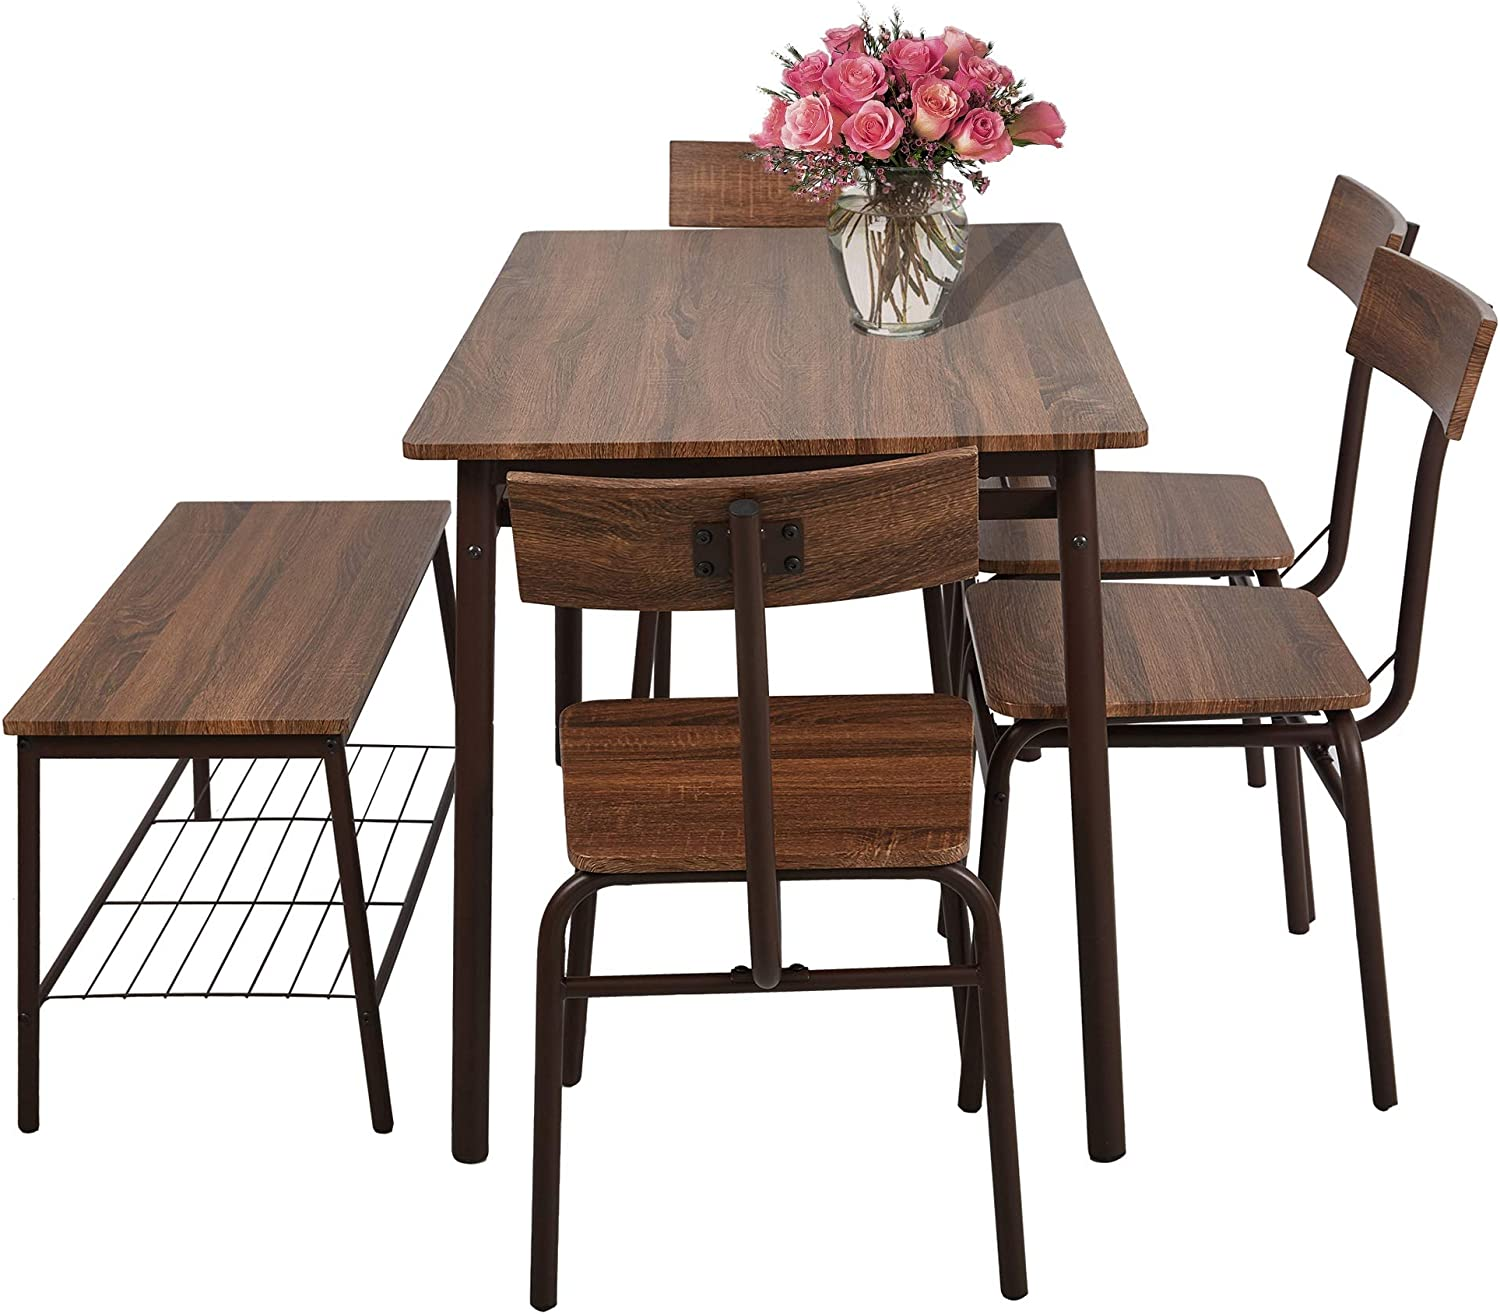 Amazon Com Luckyermore 6 Piece Dining Room Table Set With Bench Compact Wooden Kitchen Table And 5 Chairs With Metal Legs Dinette Sets Table Chair Sets